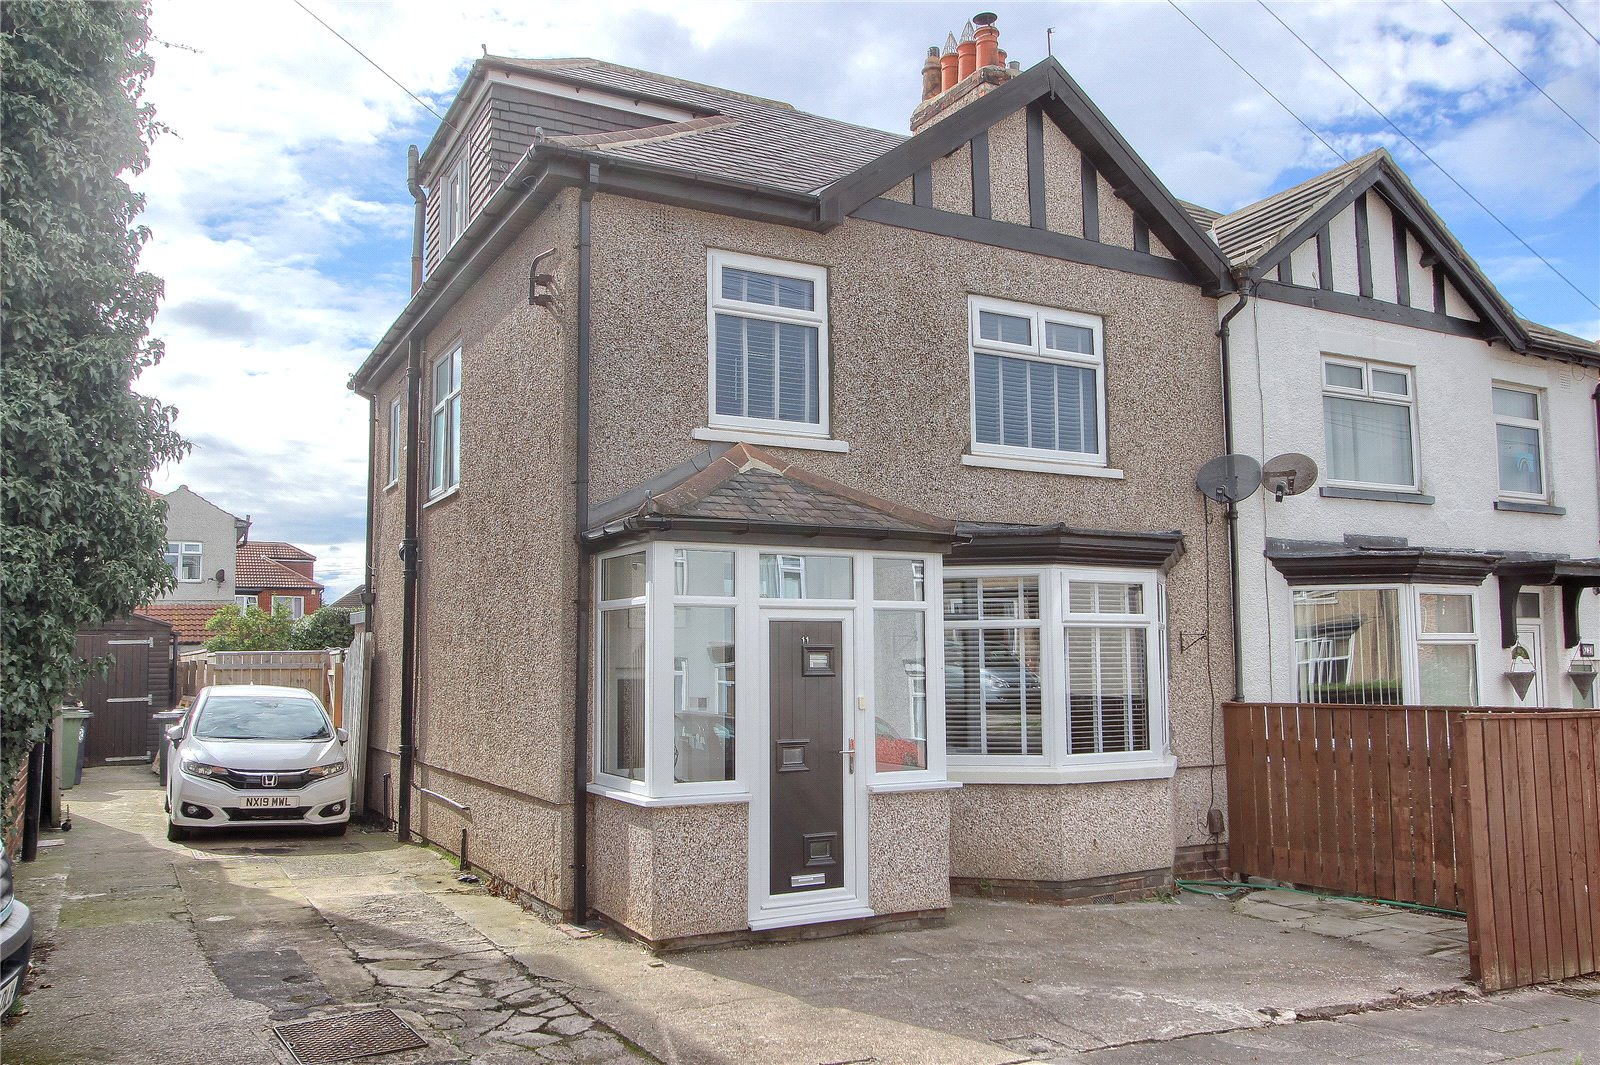 4 bed house for sale in Irvin Avenue, Saltburn-by-the-Sea 1